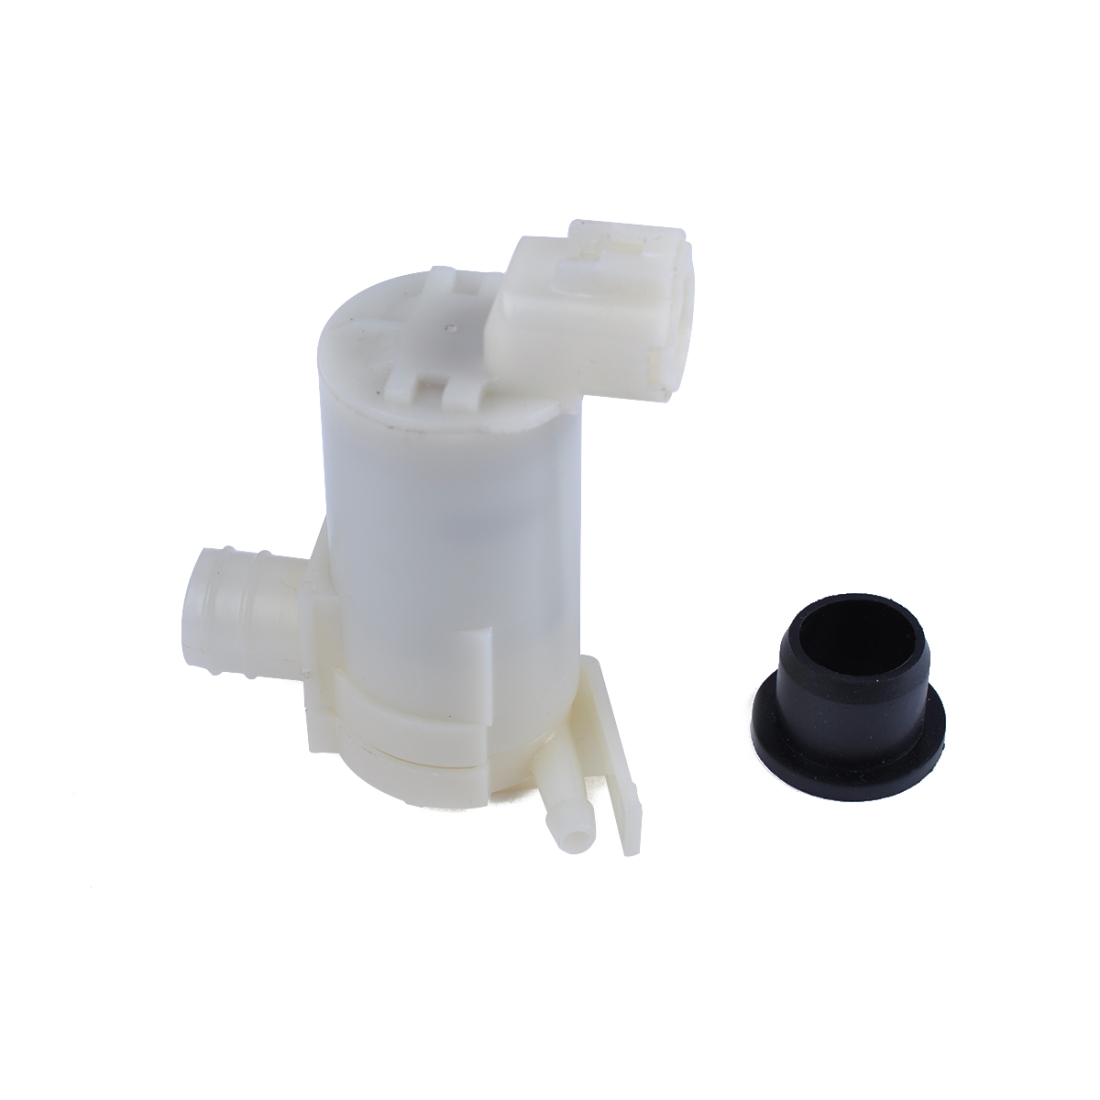 Windshield Washer Wipers Washer Pump 289203Z000 for Nissan / Infiniti 1993-2006